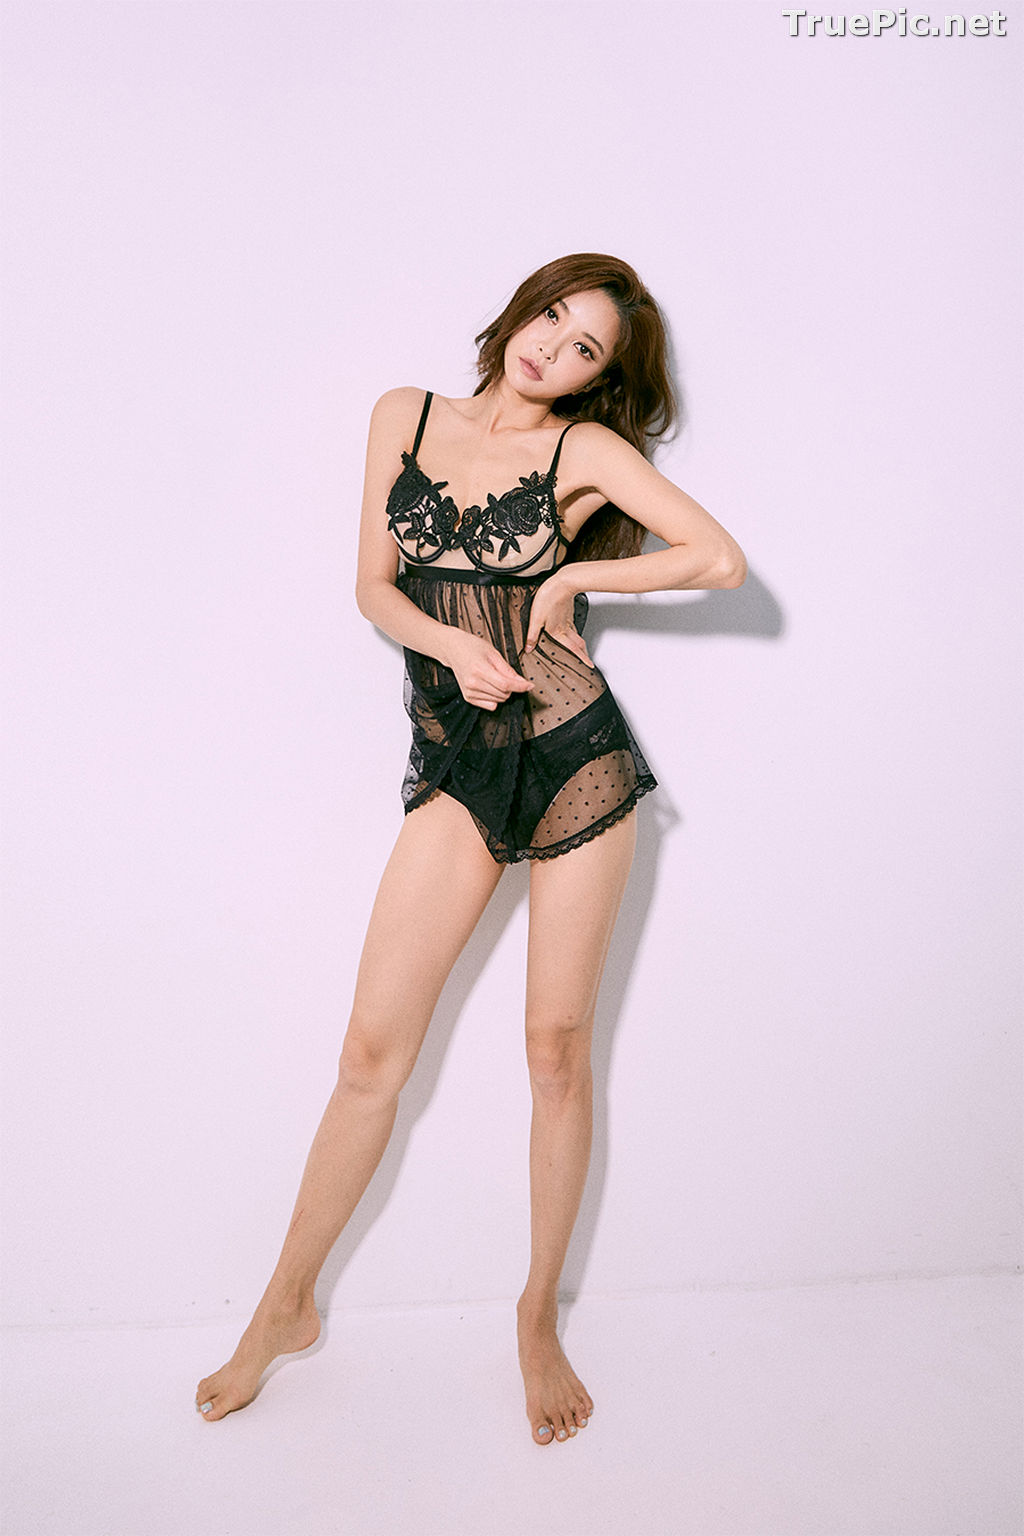 Image Korean Fashion Model – Park Soo Yeon (박수연) – Come On Vincent Lingerie #1 - TruePic.net - Picture-7